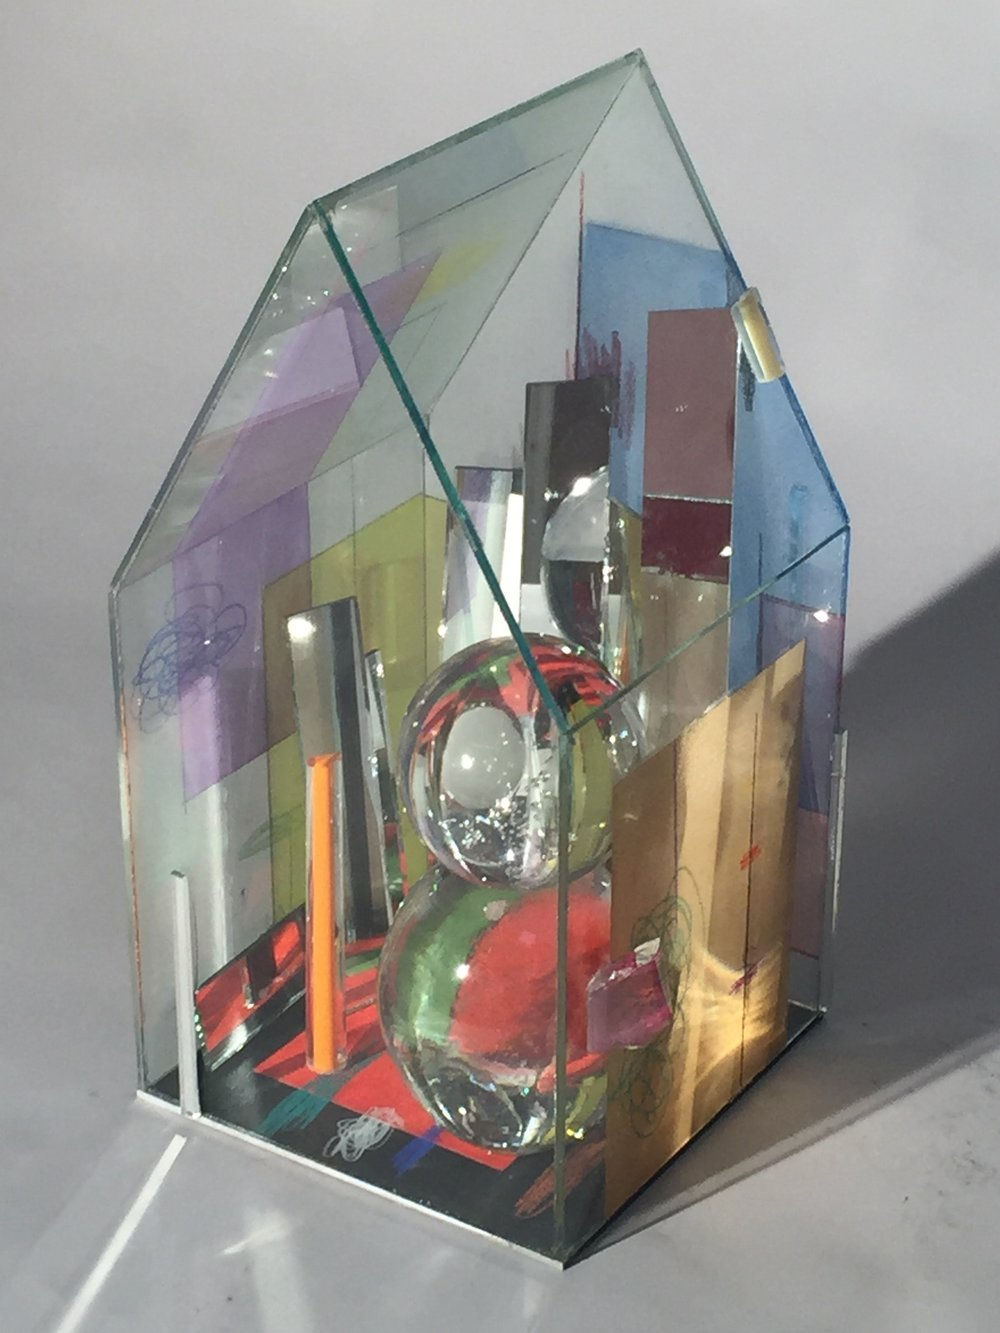 Therman Statom, Dos Temporados, 2017 Glass and mixed media 16 x 8 inches $3100